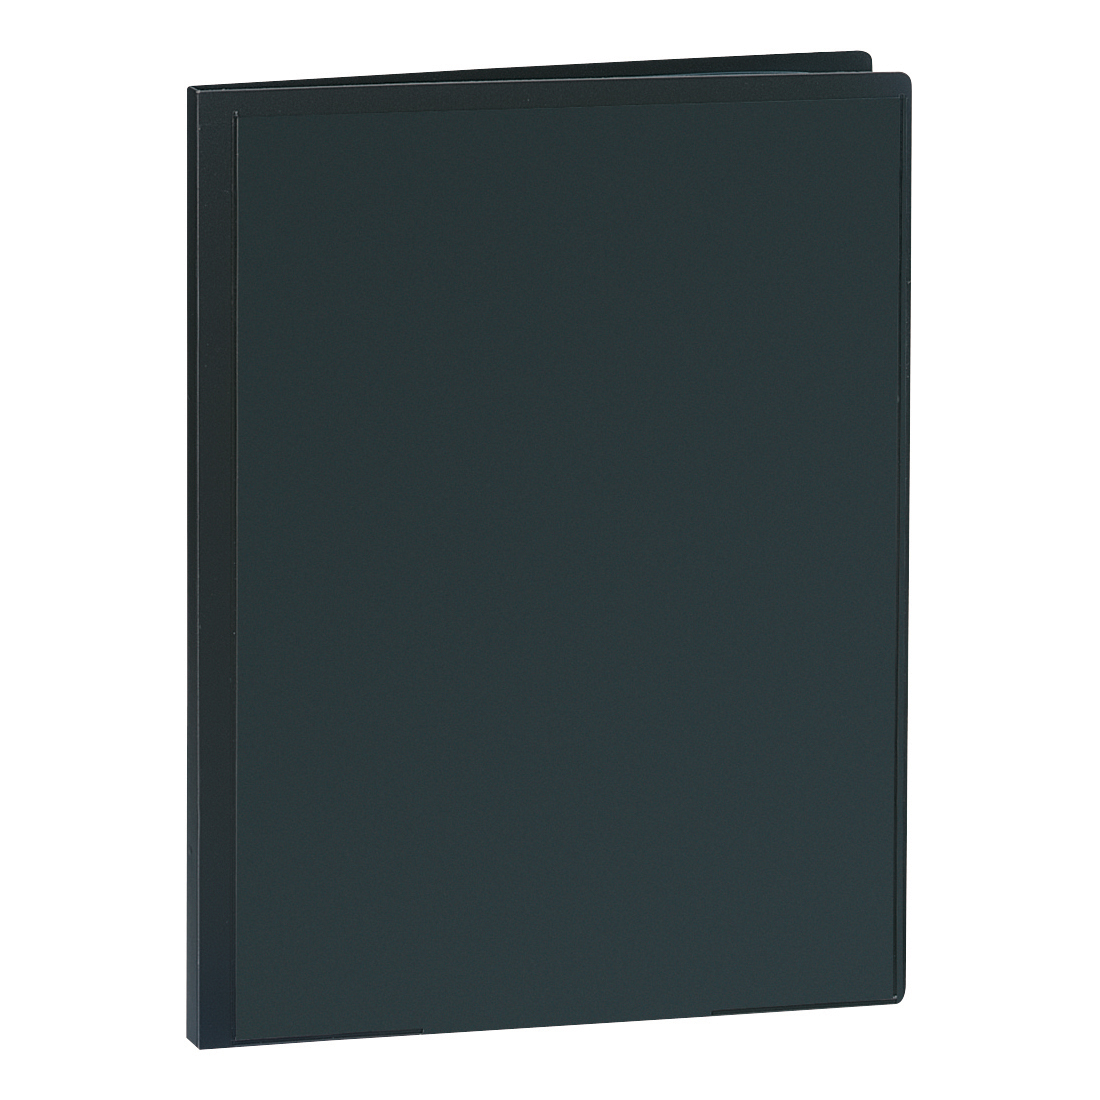 5 Star Office Display Book Rigid Cover Personalisable Polypropylene 40 Pockets Black